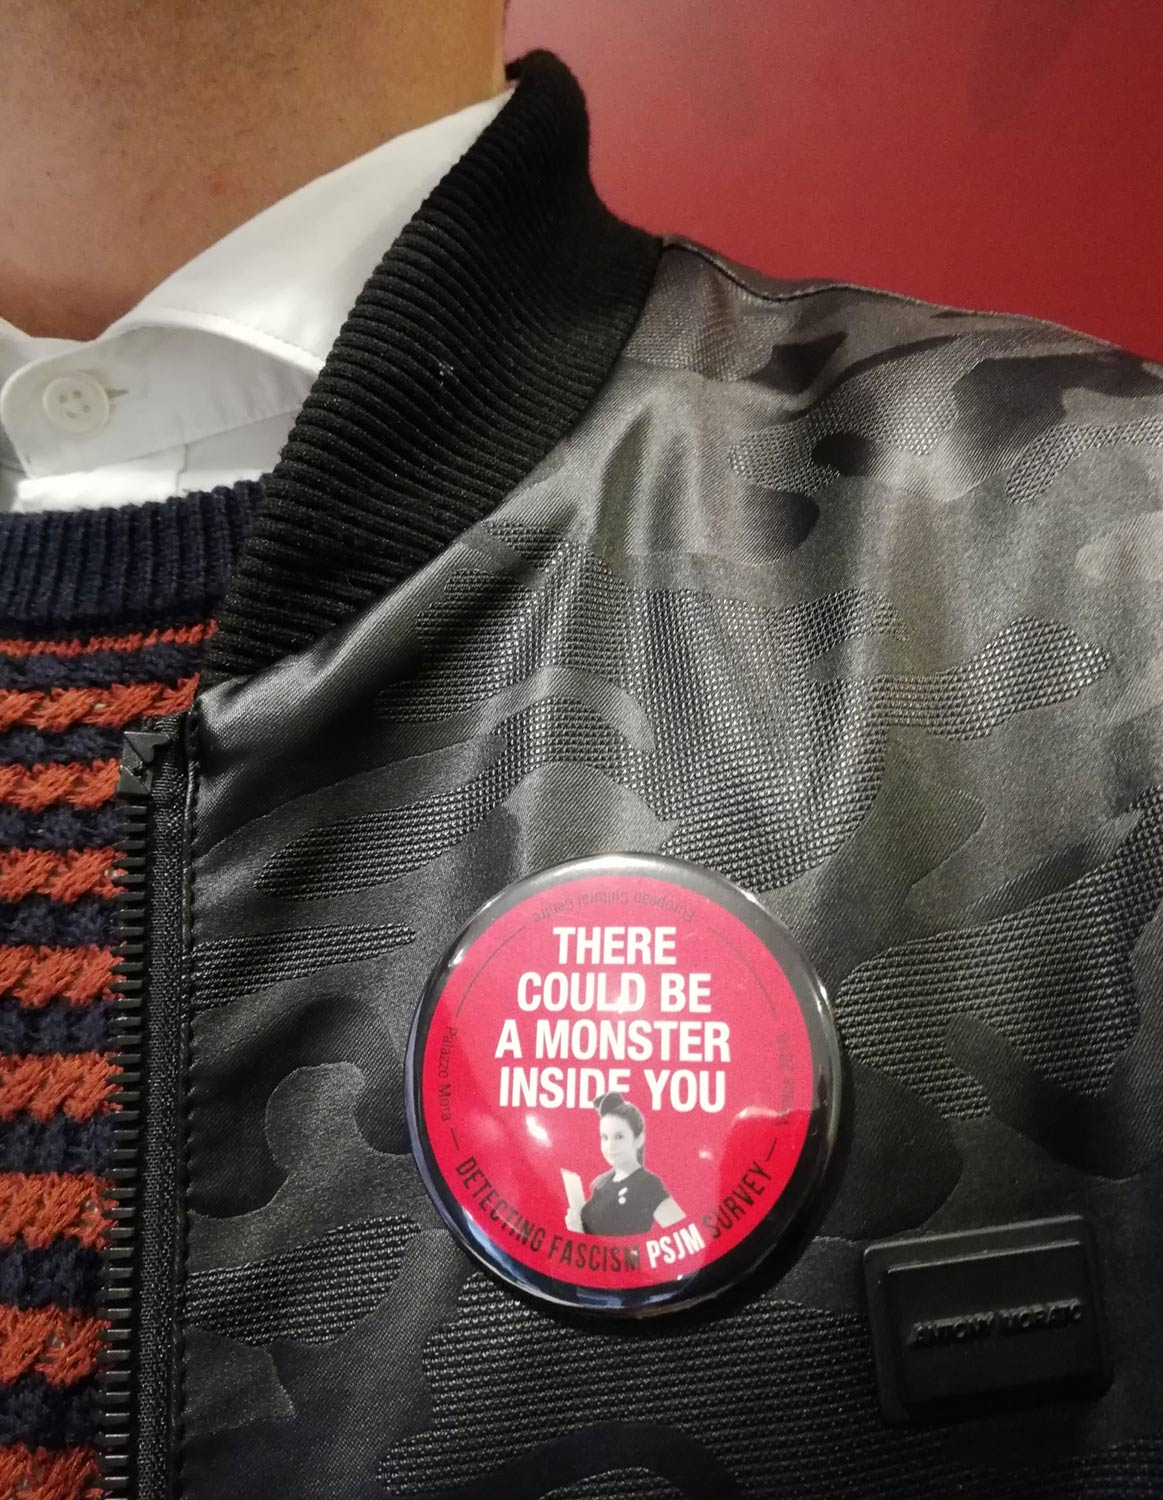 «There Could Be A Monster Inside You. Detecting Fascism PSJM Survey », 2019, Participatory performance, Edition of badges.